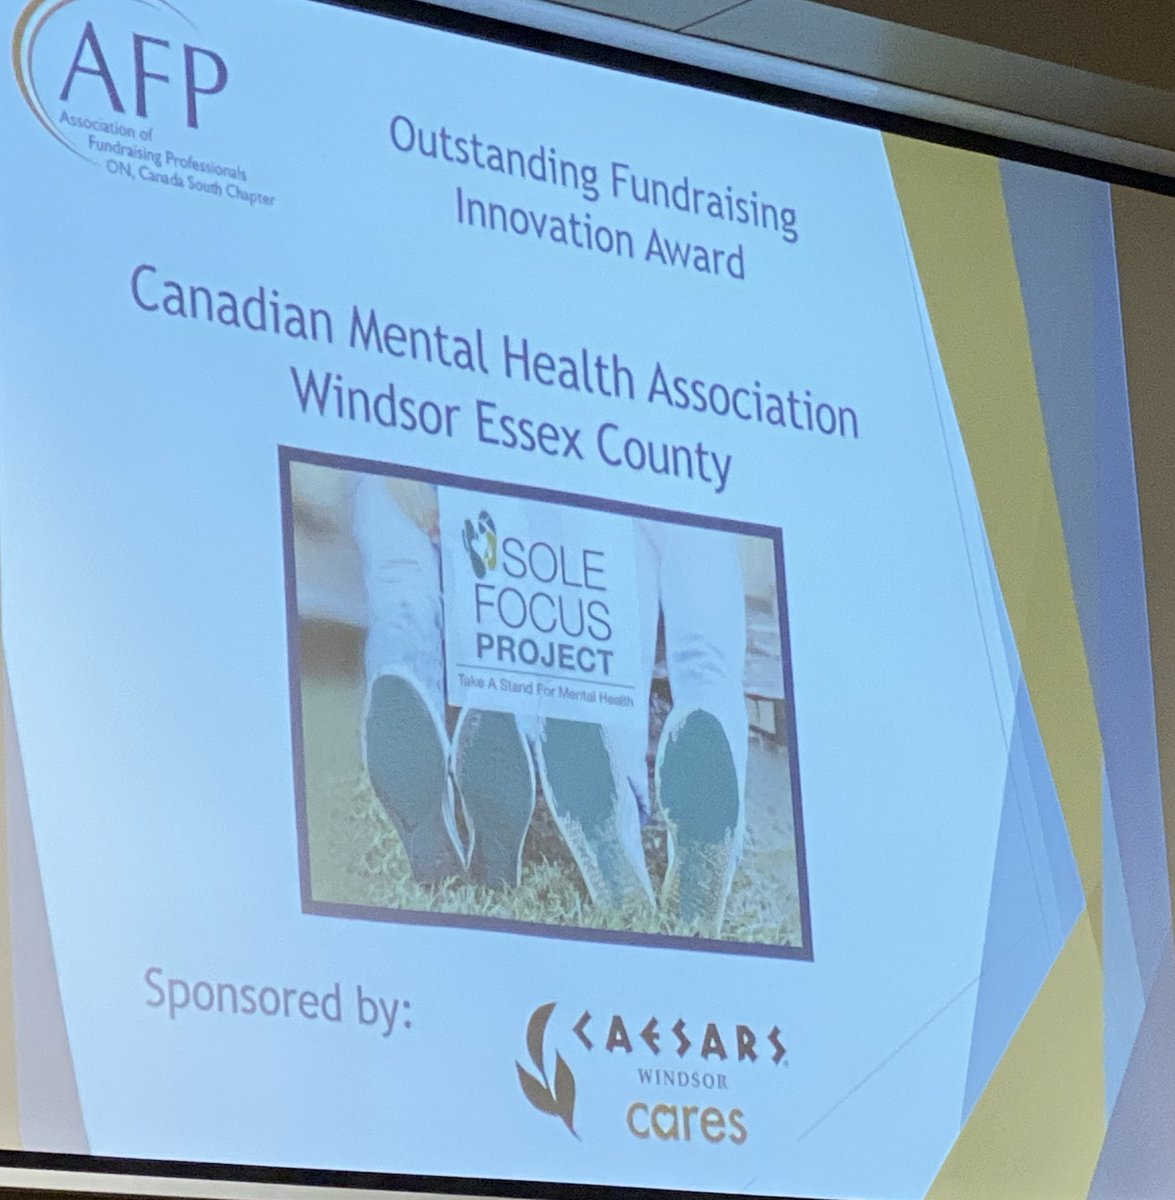 test Twitter Media - Congrats @kwillism @ClaudiadenBoer2  &  all #CMHA #YQG staff doing phenomenal work in @CityWindsorON @EssexCountyON At @AFPCanadaSouth awards ceremony #YQG with #NationalPhilanthropyDay Accepting Outstanding #Fundraising Innovation @CMHAOntario #solefocusproject https://t.co/adC4AYDDK0